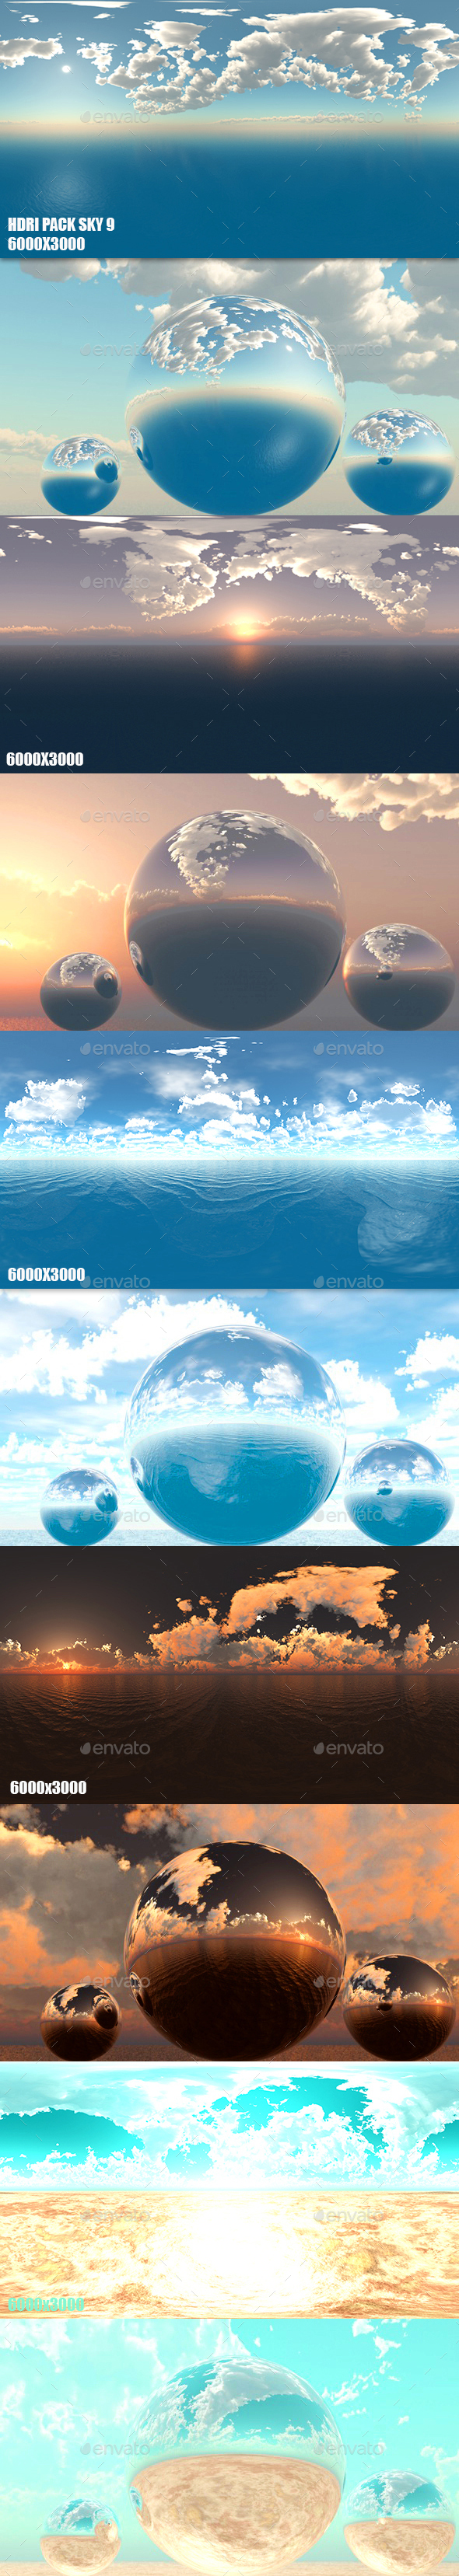 HDRI Pack Sky 9 - 3DOcean Item for Sale